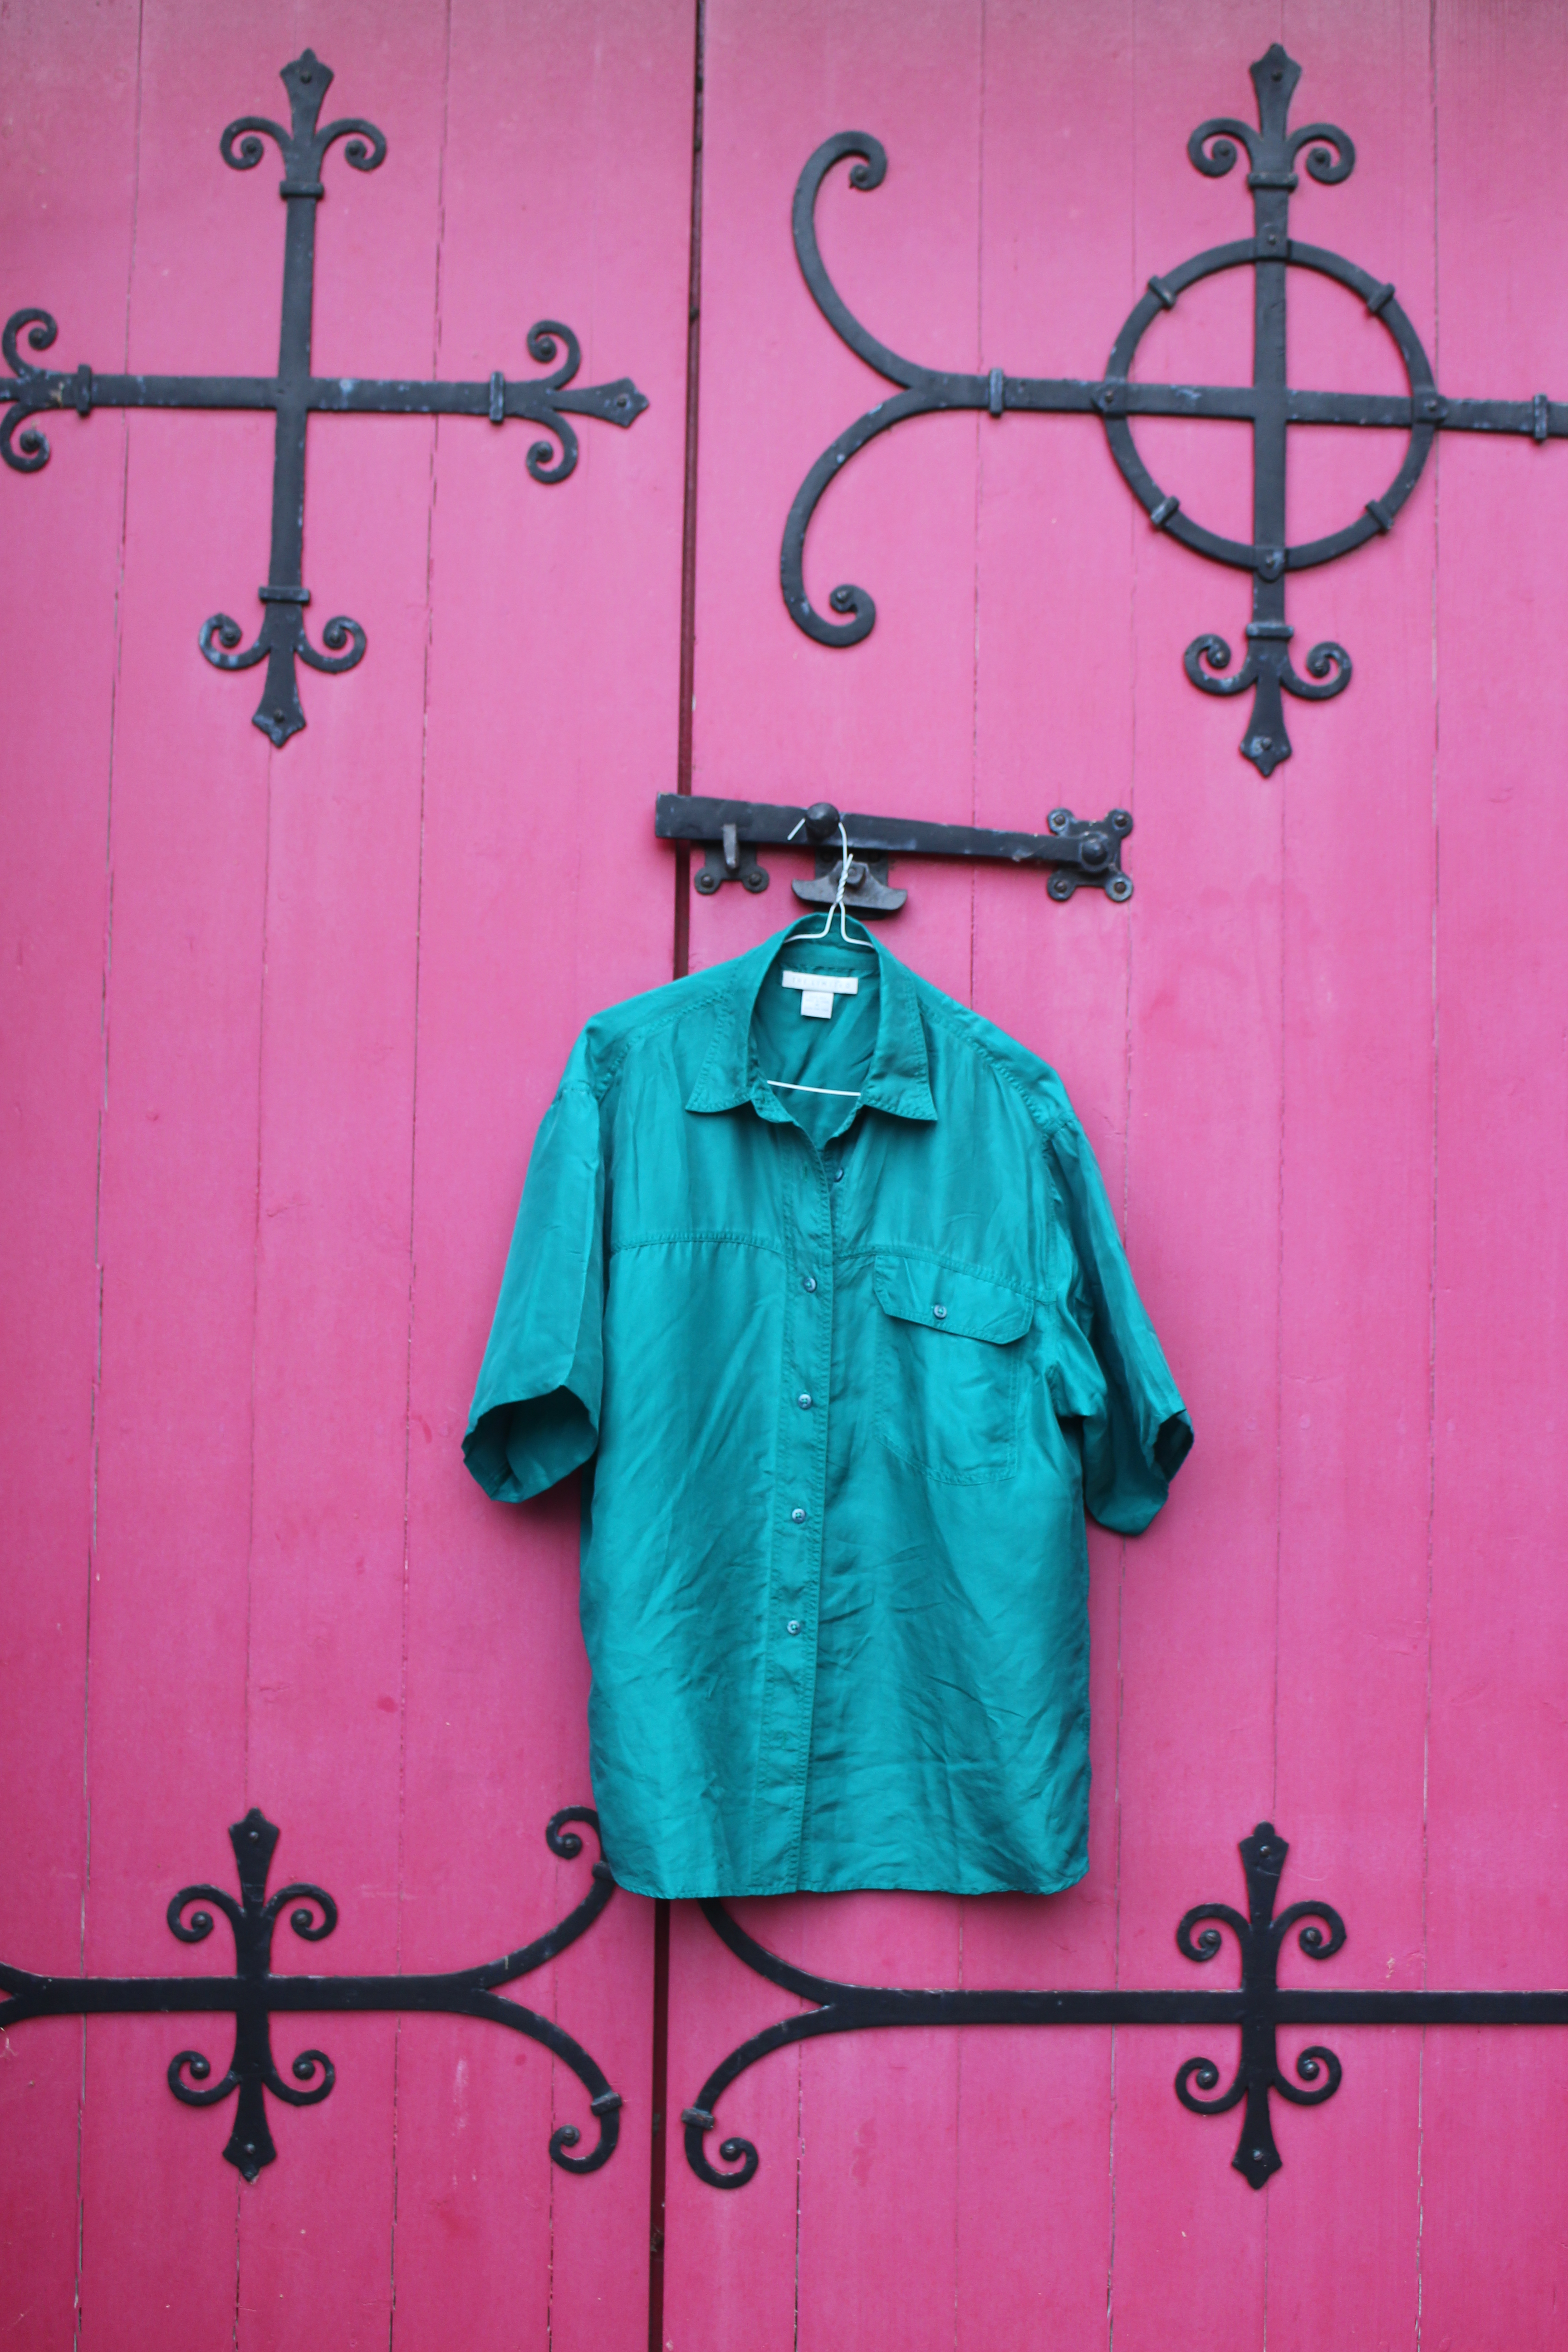 The Limited green short-sleeved silk shirt, from Unicorn, 5 Ship Street, Oxford